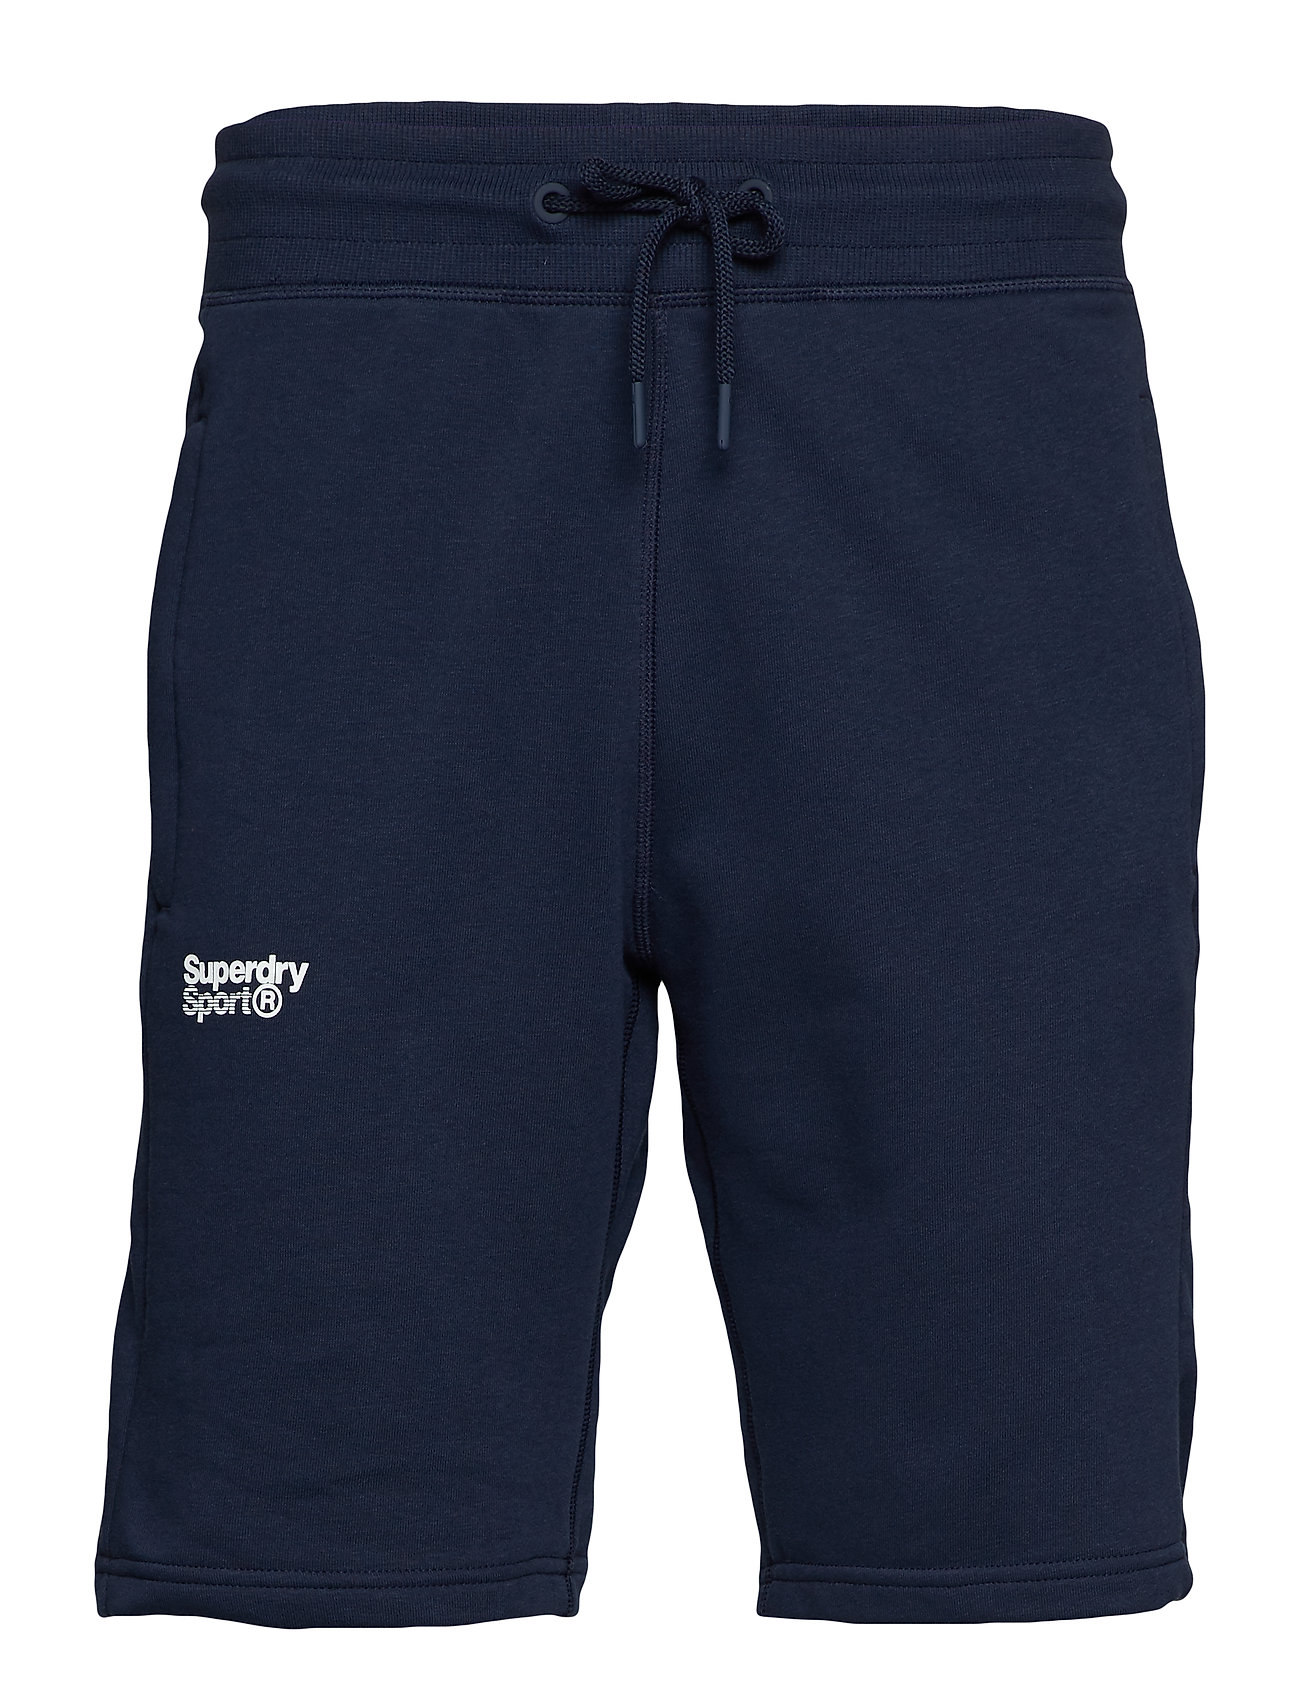 Superdry Sport CORE SPORT SHORTS - NAVY